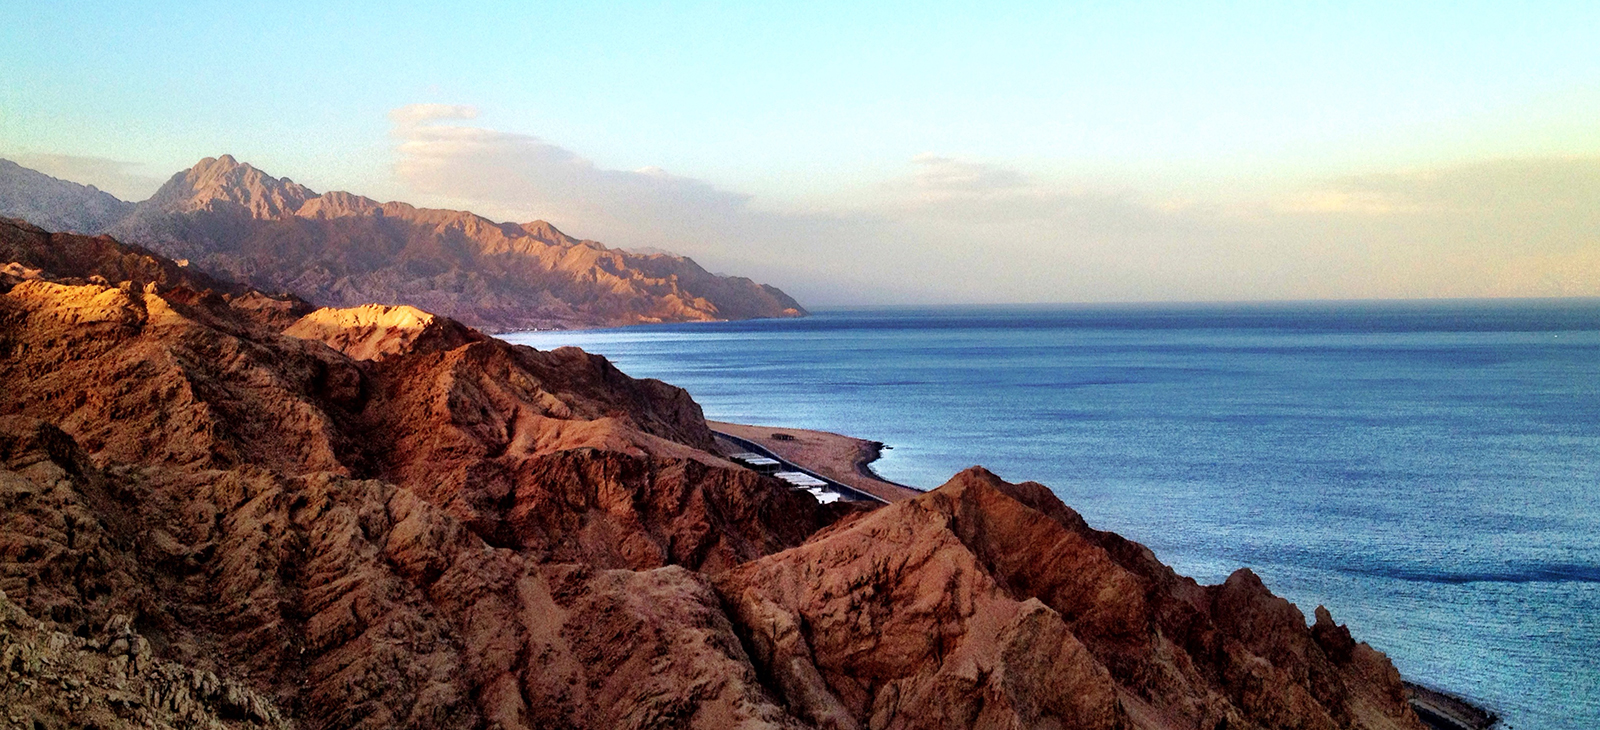 View-above-Dahab-South-Sinai.jpg